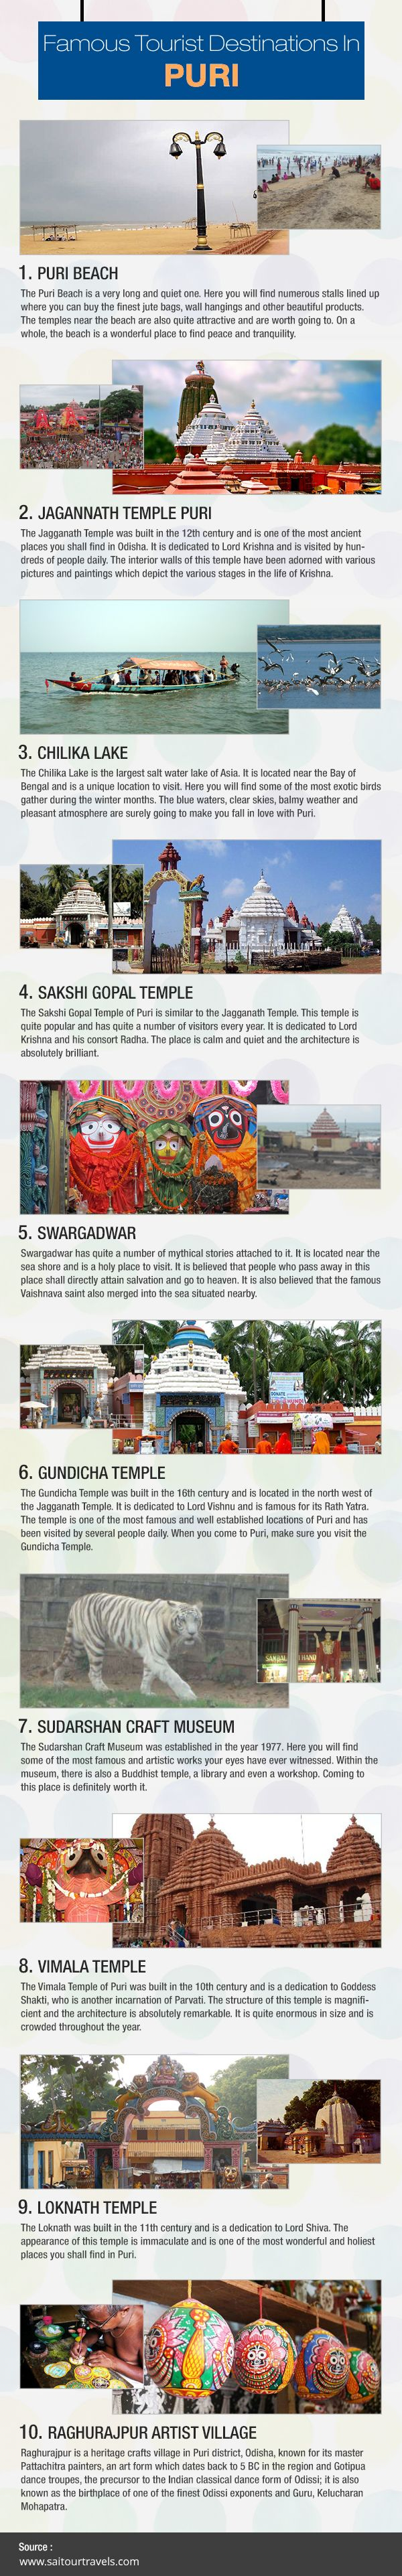 The latest ‪    #Infogrphic    about famous Tourist destinations in ‪         #Puri Created by Sai Tour & Travels  Visit: http://visual.ly/famous-tourist-destinations-puri ‪      #Chandigarh #Mohali #Panchkula #taxiservice #Touroperator #Odisha #Jagannathpuri #India